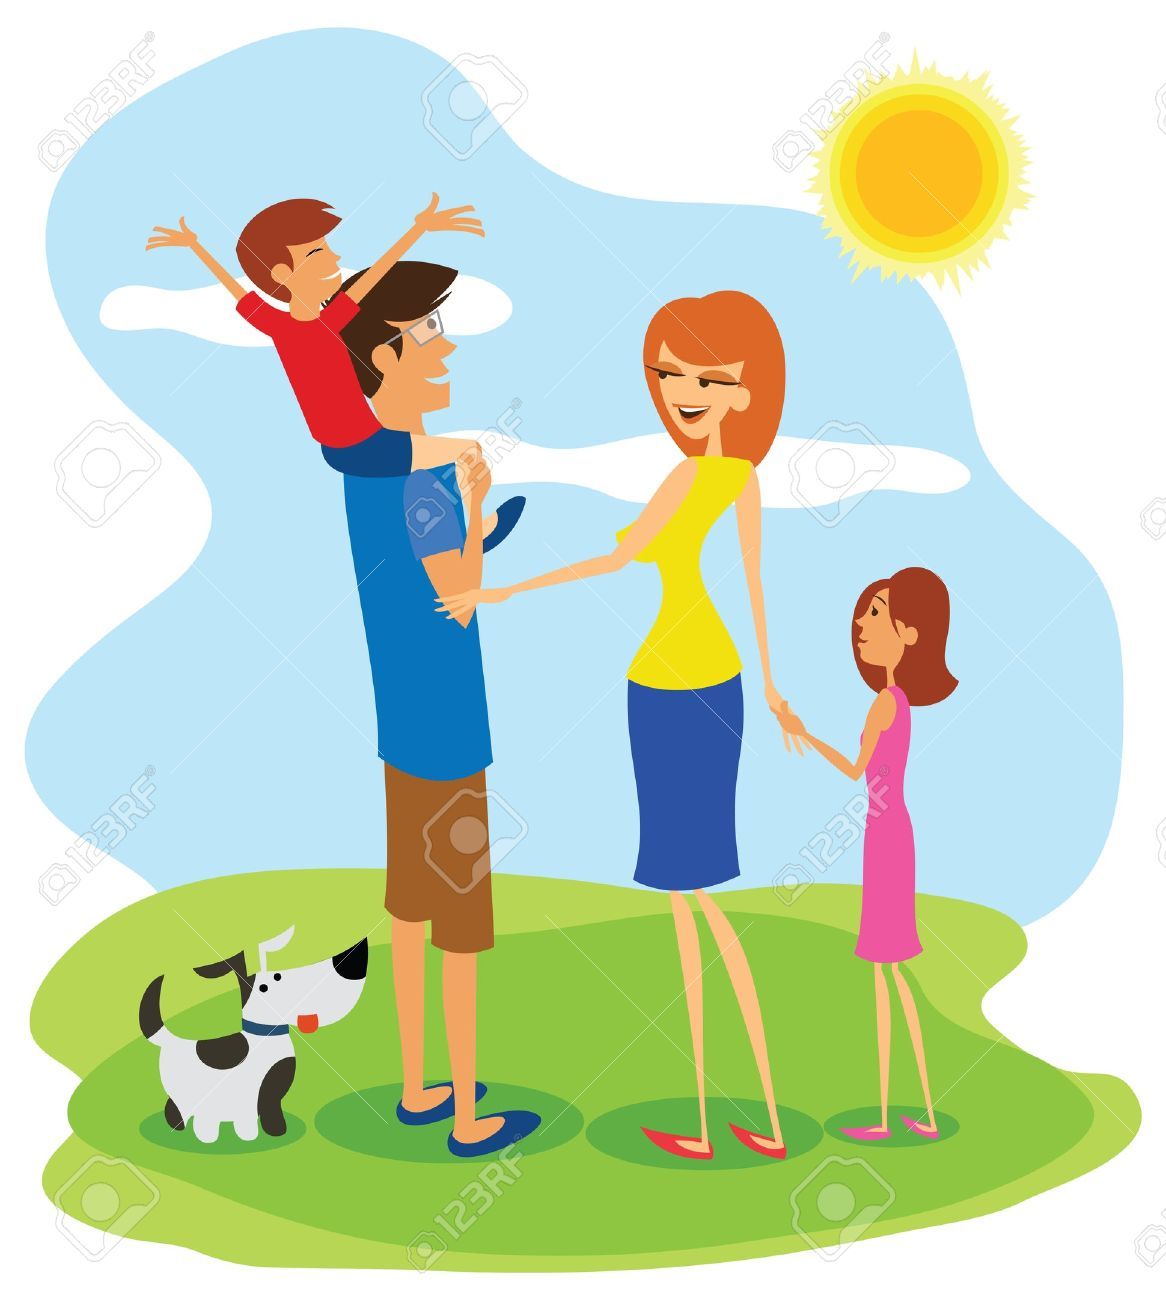 419 Family Outing Stock Illustrations, Cliparts And Royalty Free.